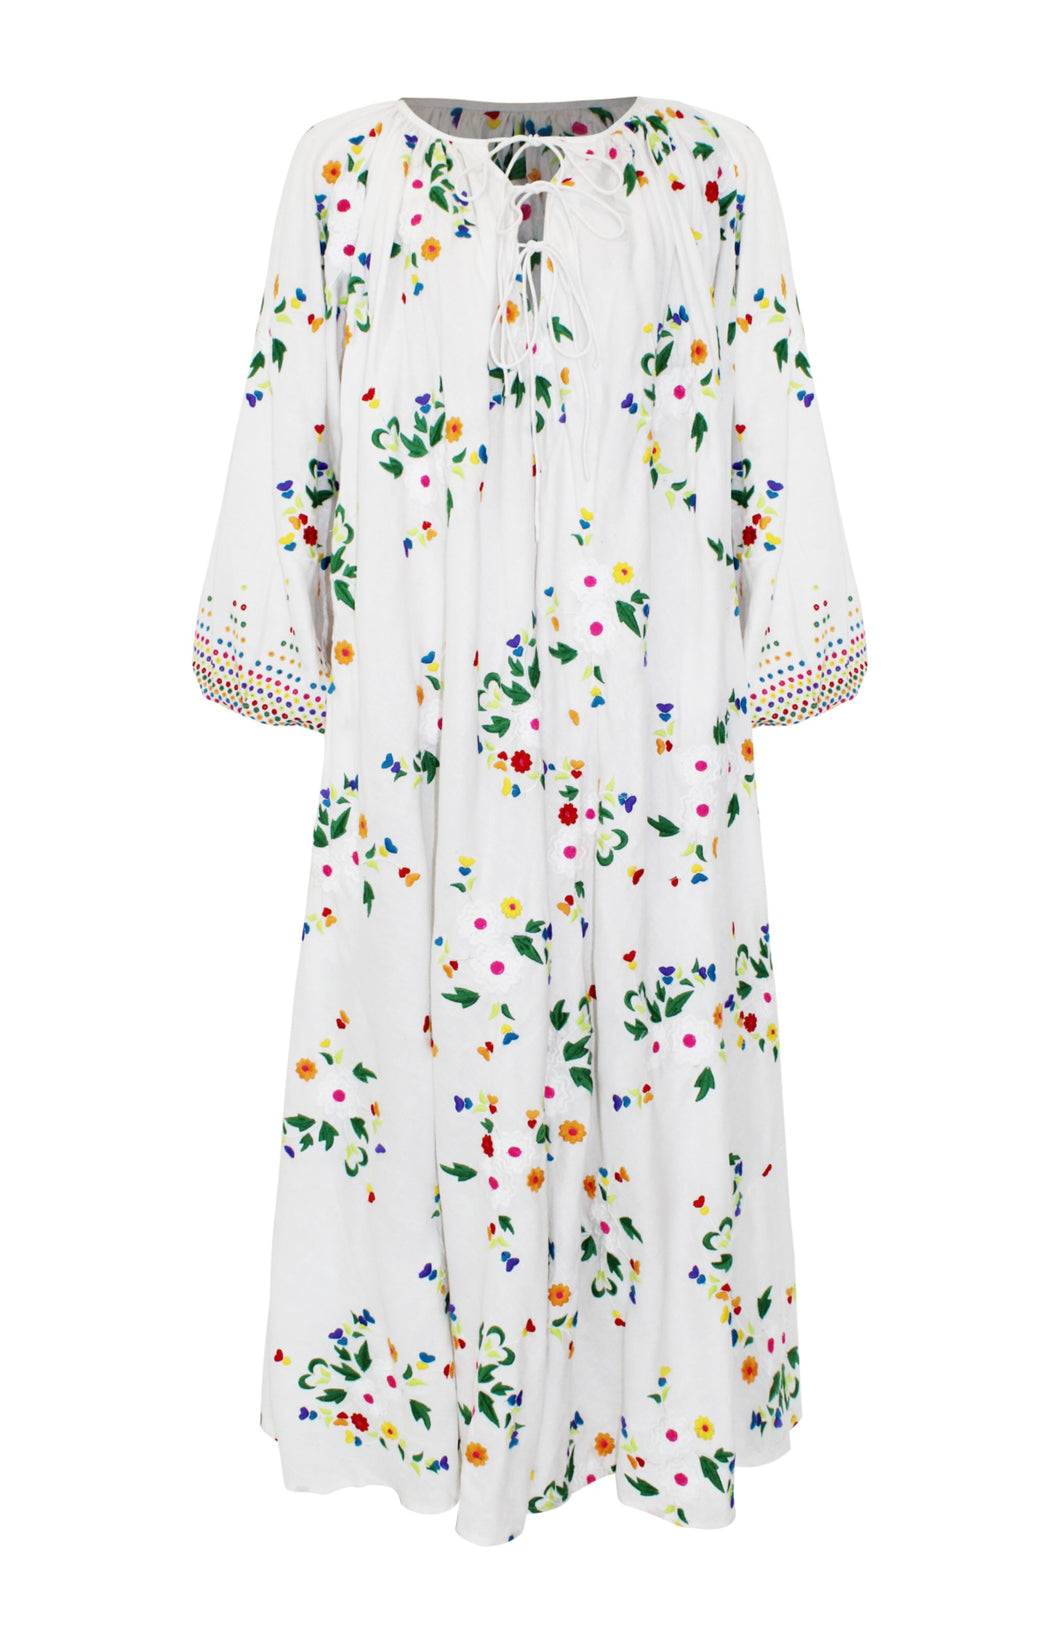 Nimi Dress - All Things Mochi - white floral dress (front)